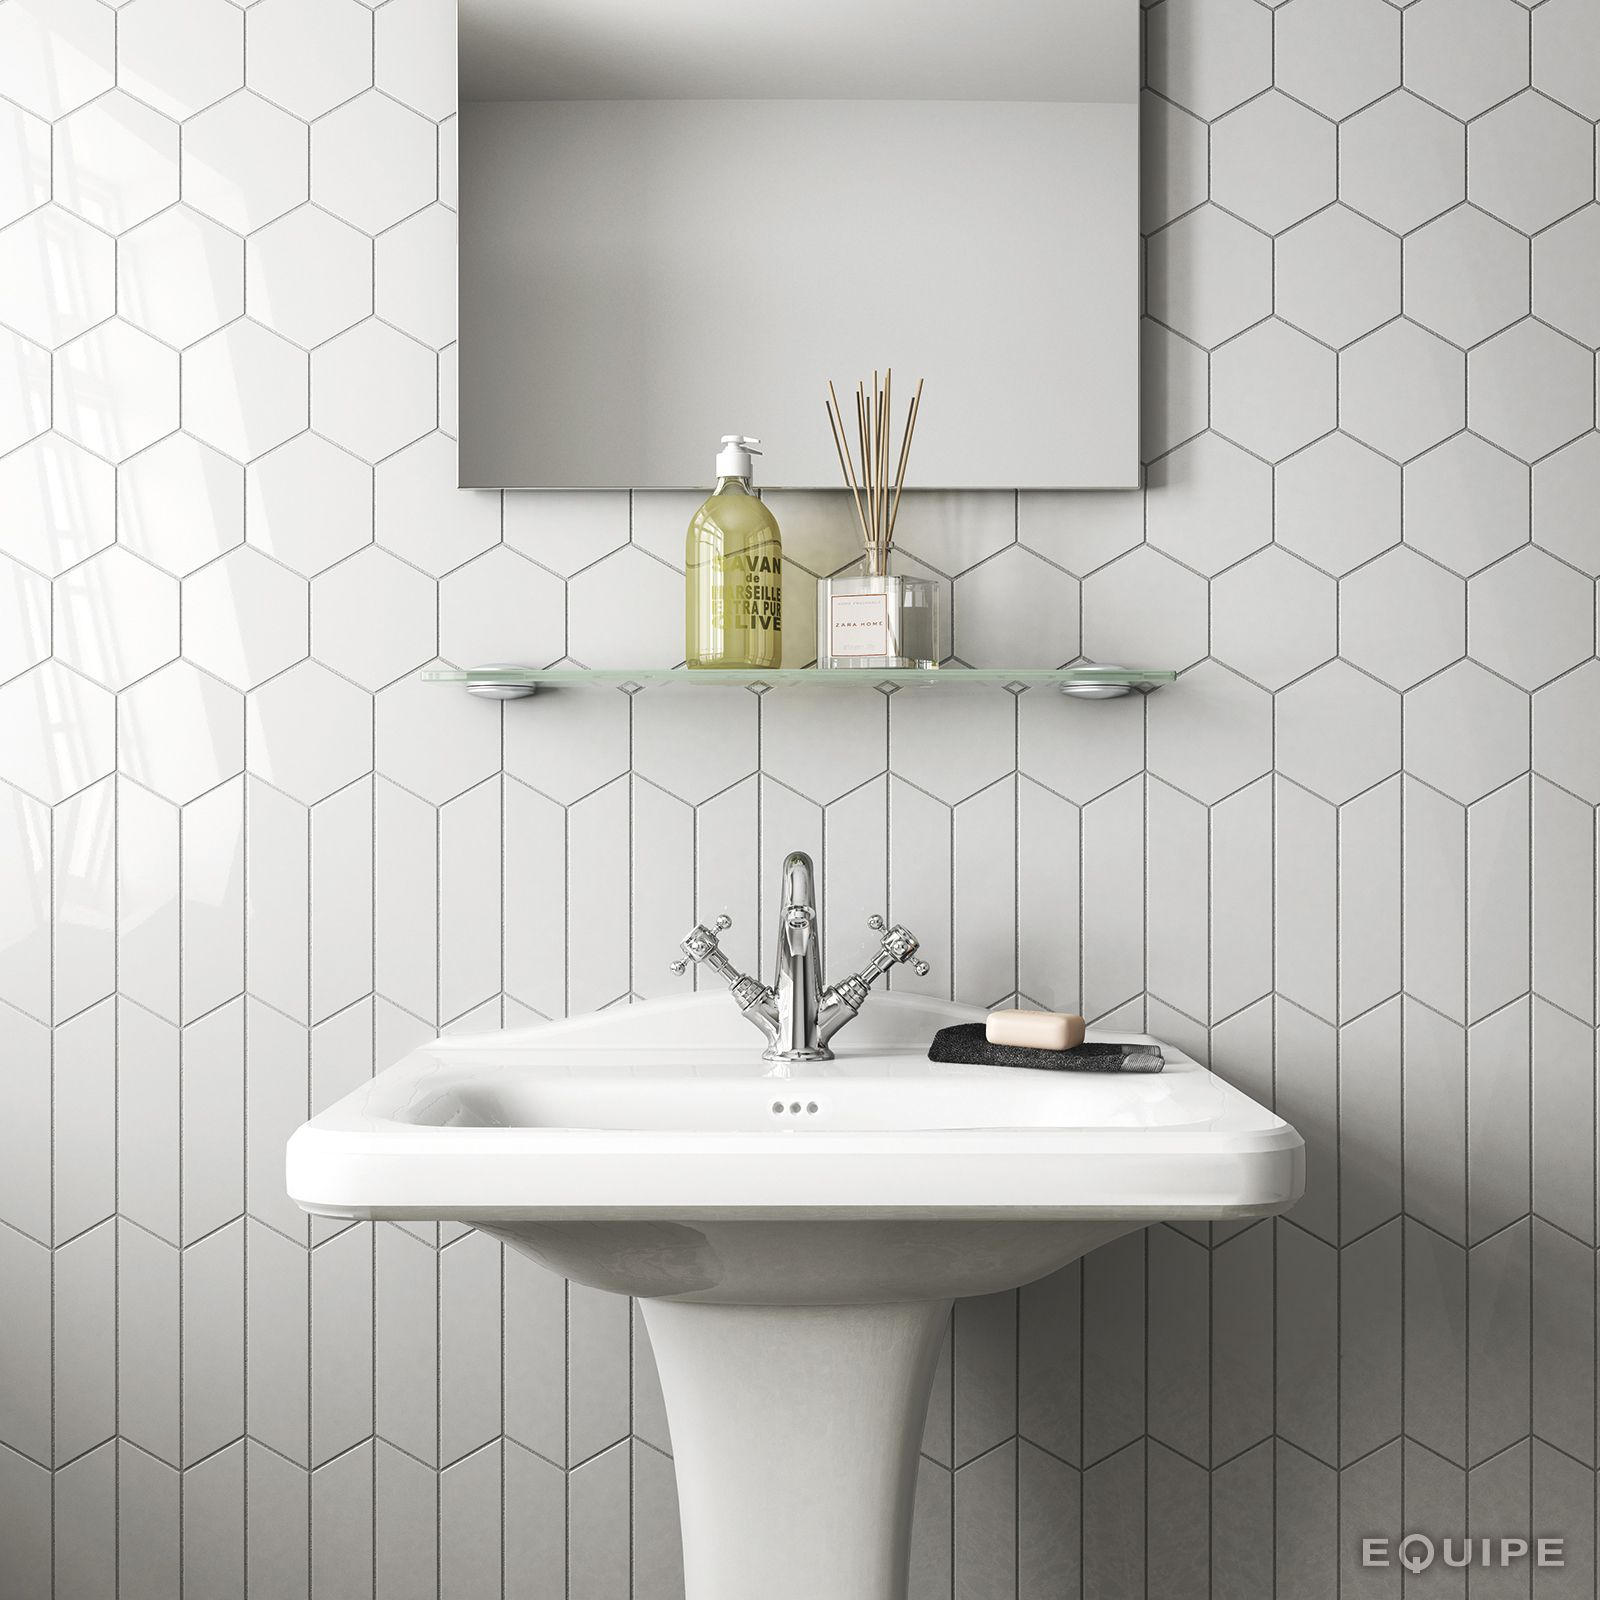 15+ Luxury Bathroom Tile Patterns Ideas | Scale, Walls and Bathroom ...